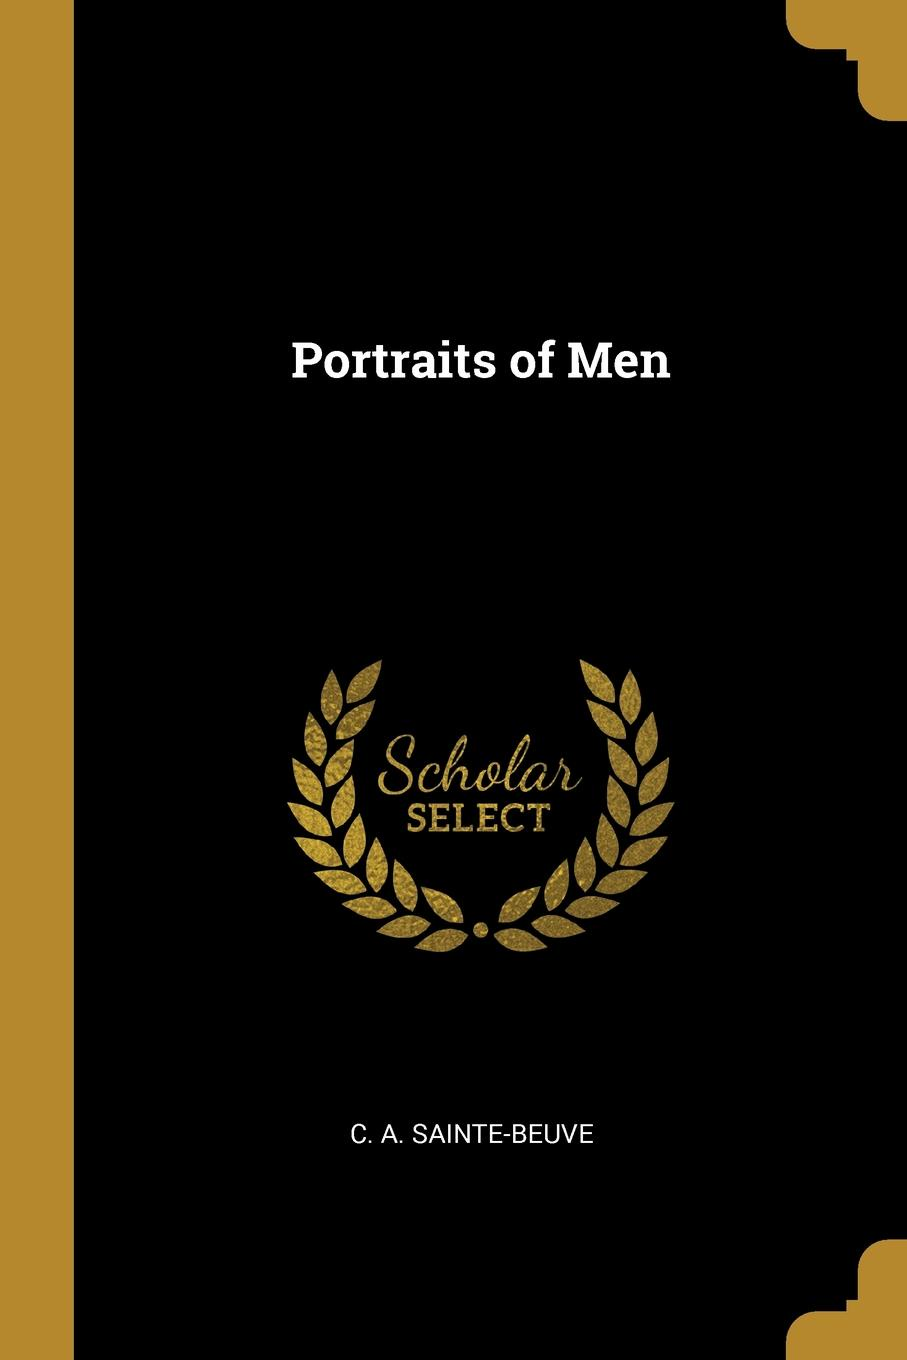 C. A. Sainte-Beuve. Portraits of Men